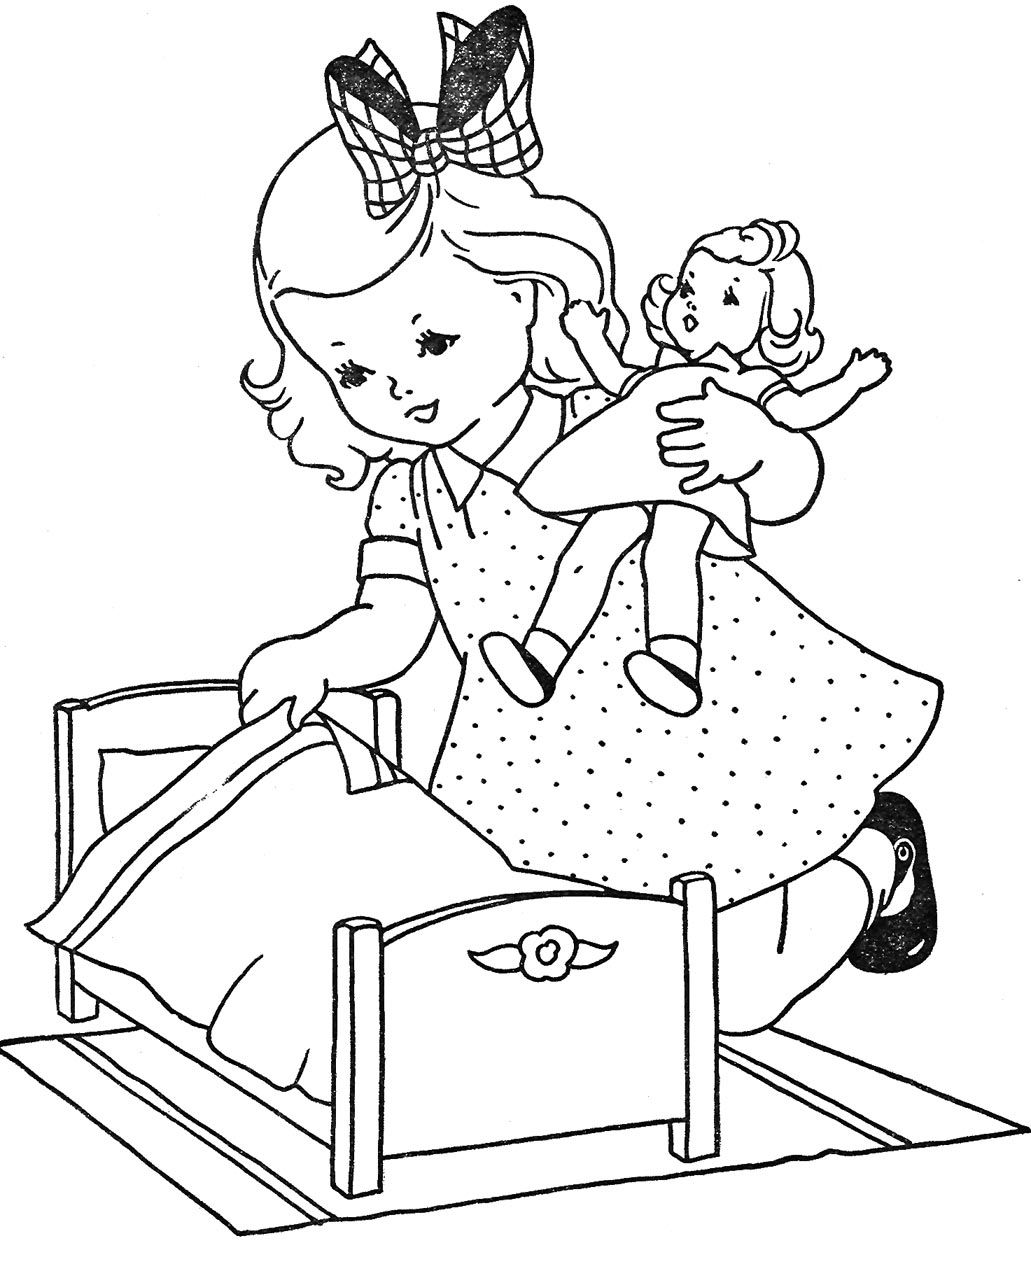 coloring pictures for kids disney coloring pages best coloring pages for kids pictures for coloring kids